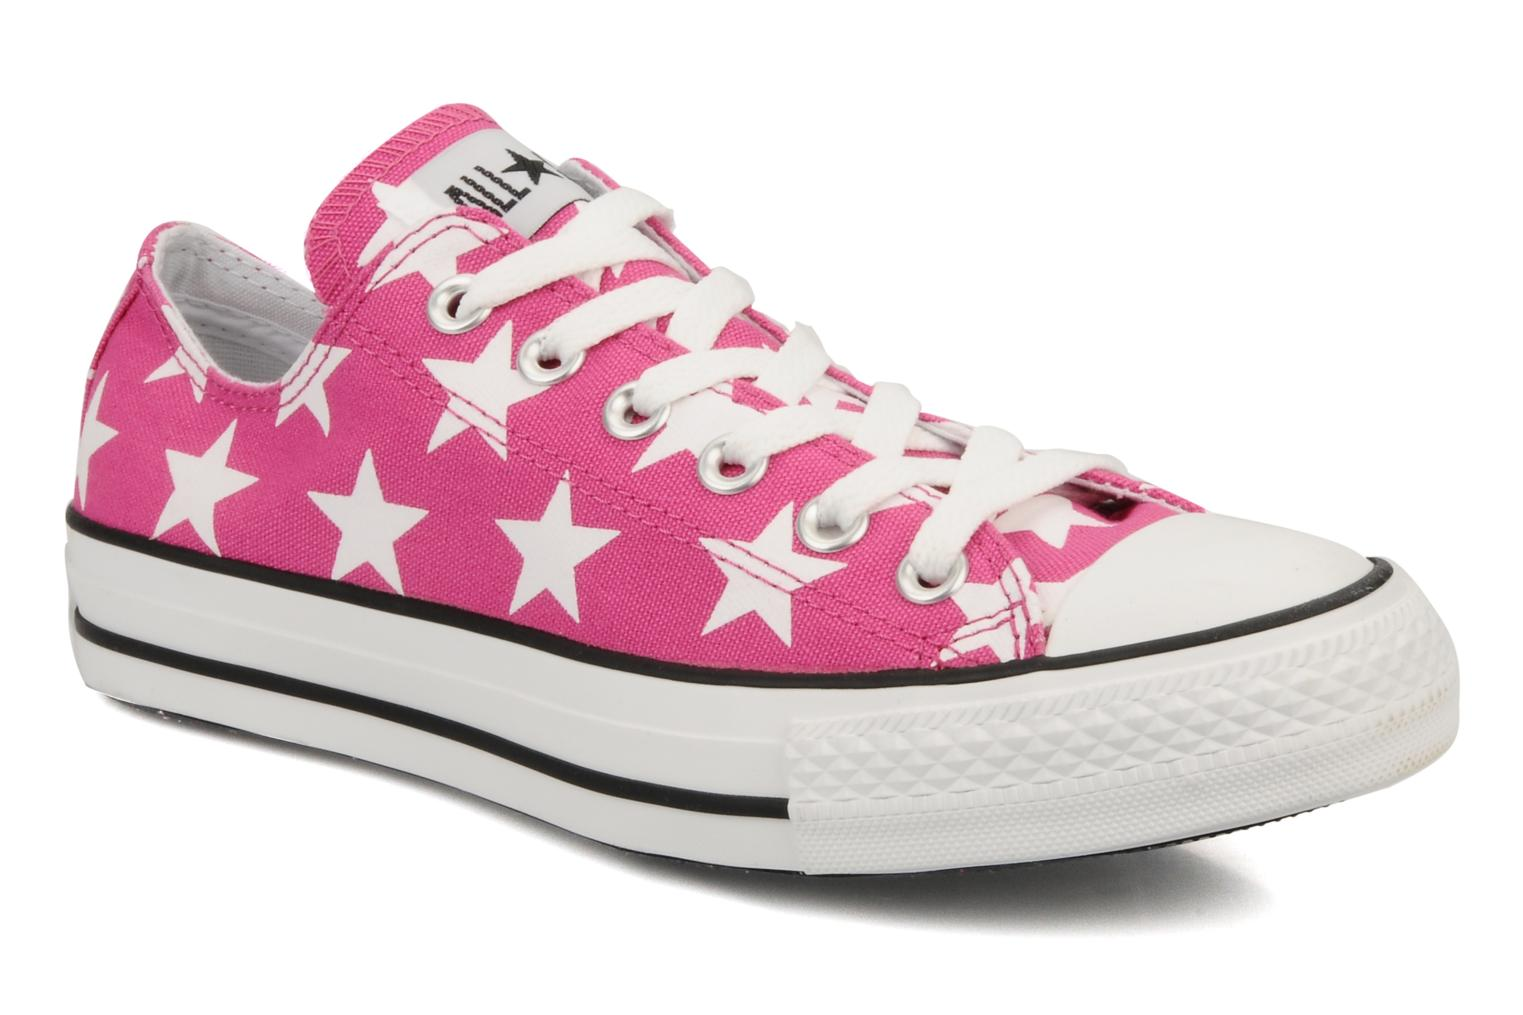 all star converse outlet 6ztx  all star converse outlet